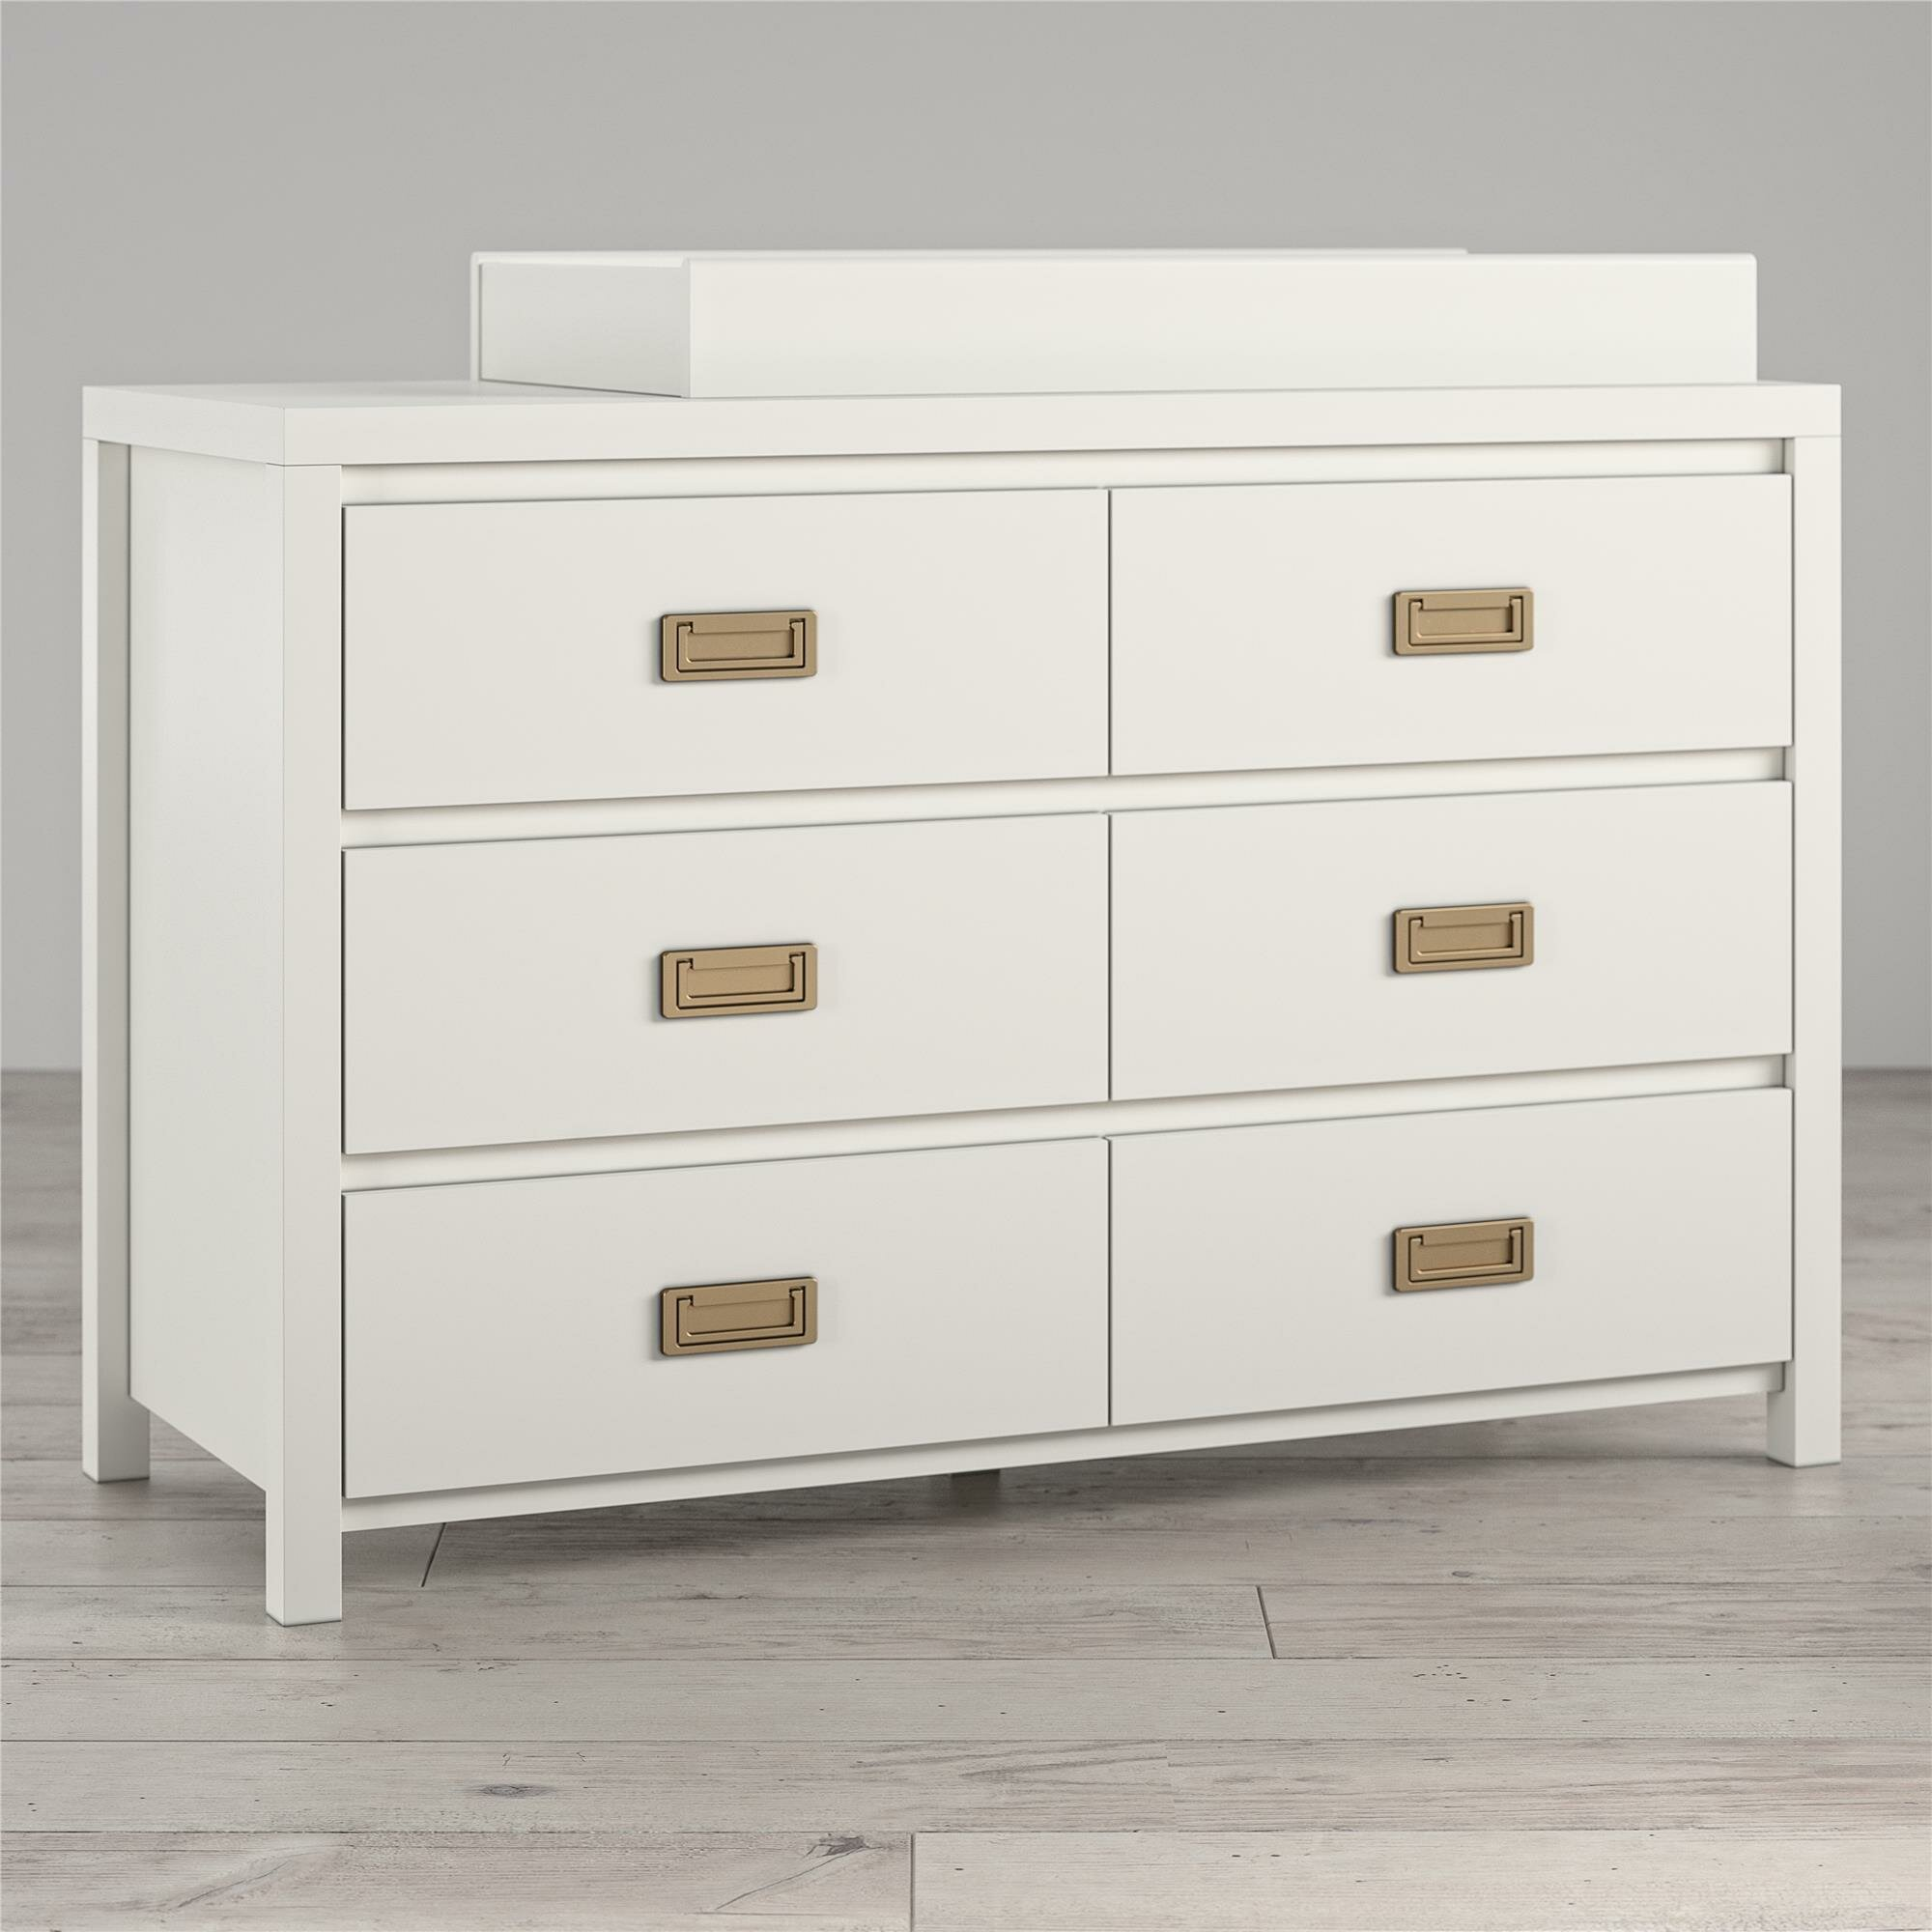 Awesome Little Seeds Monarch Hill Haven Changing Table Dresser Wayfair Download Free Architecture Designs Intelgarnamadebymaigaardcom